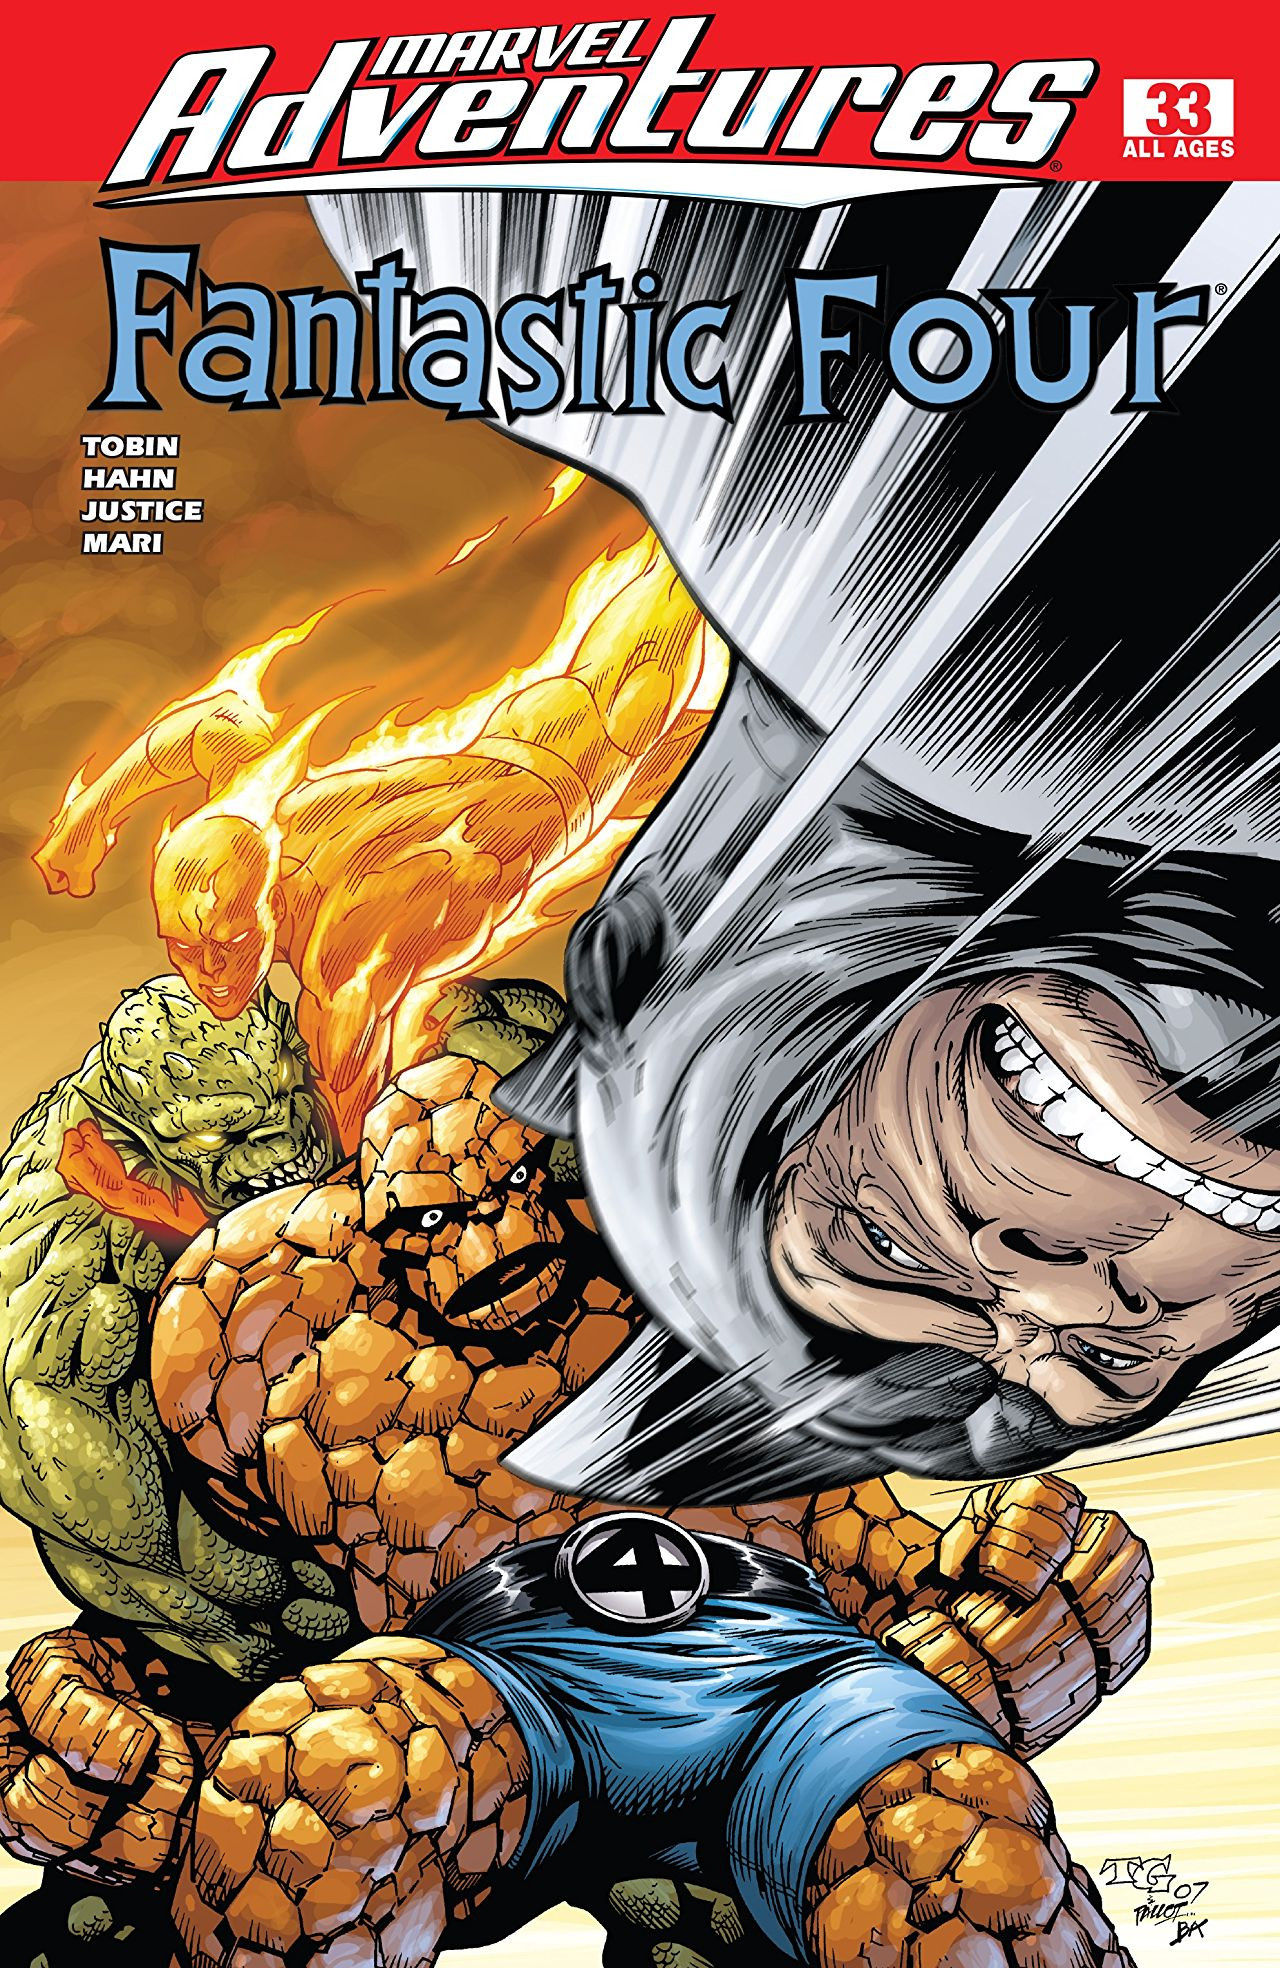 Marvel Adventures: Fantastic Four Vol 1 33